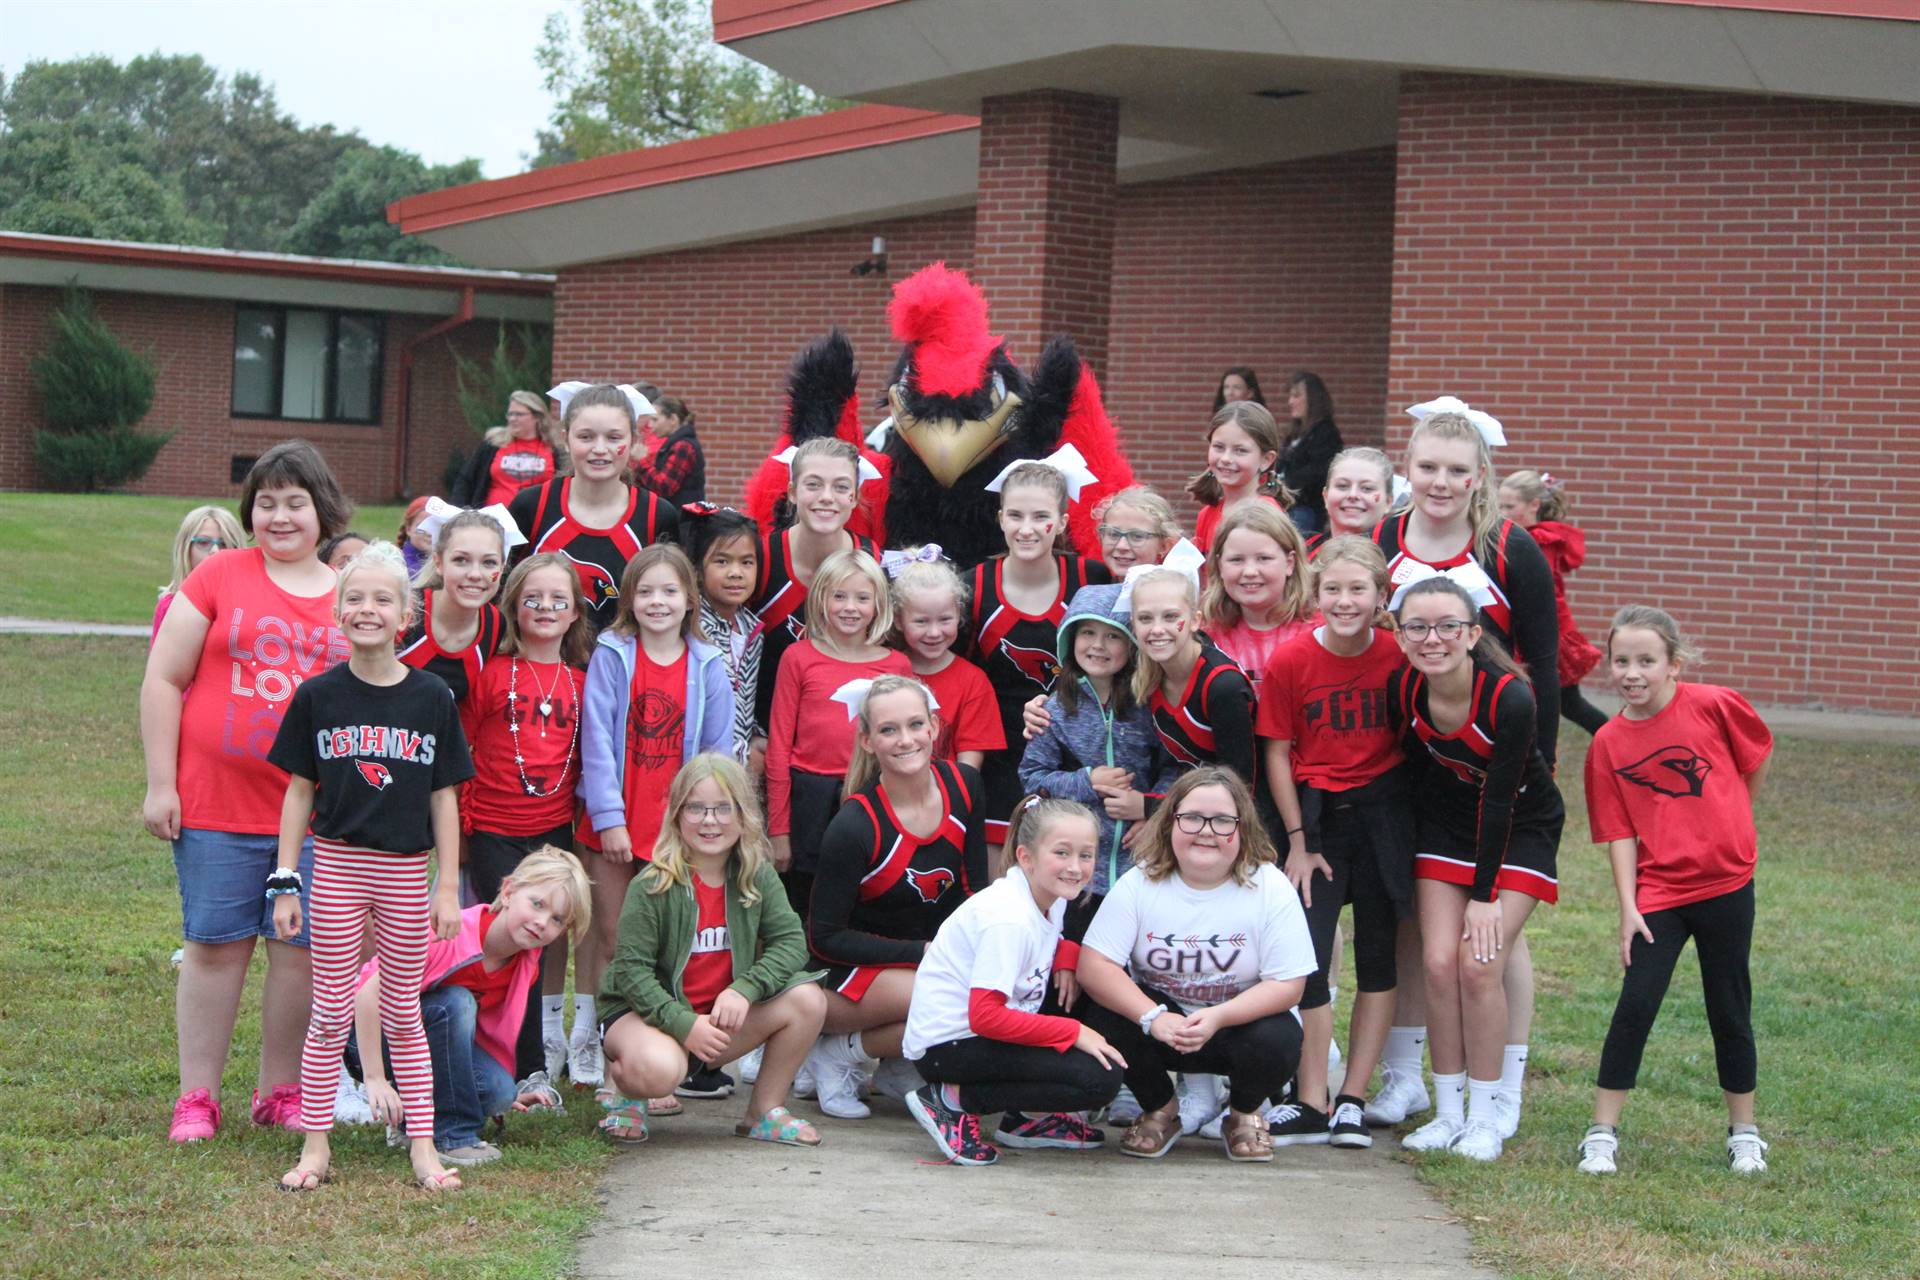 high school cheerleaders, mascot, and elementary girls posing for a on the playground